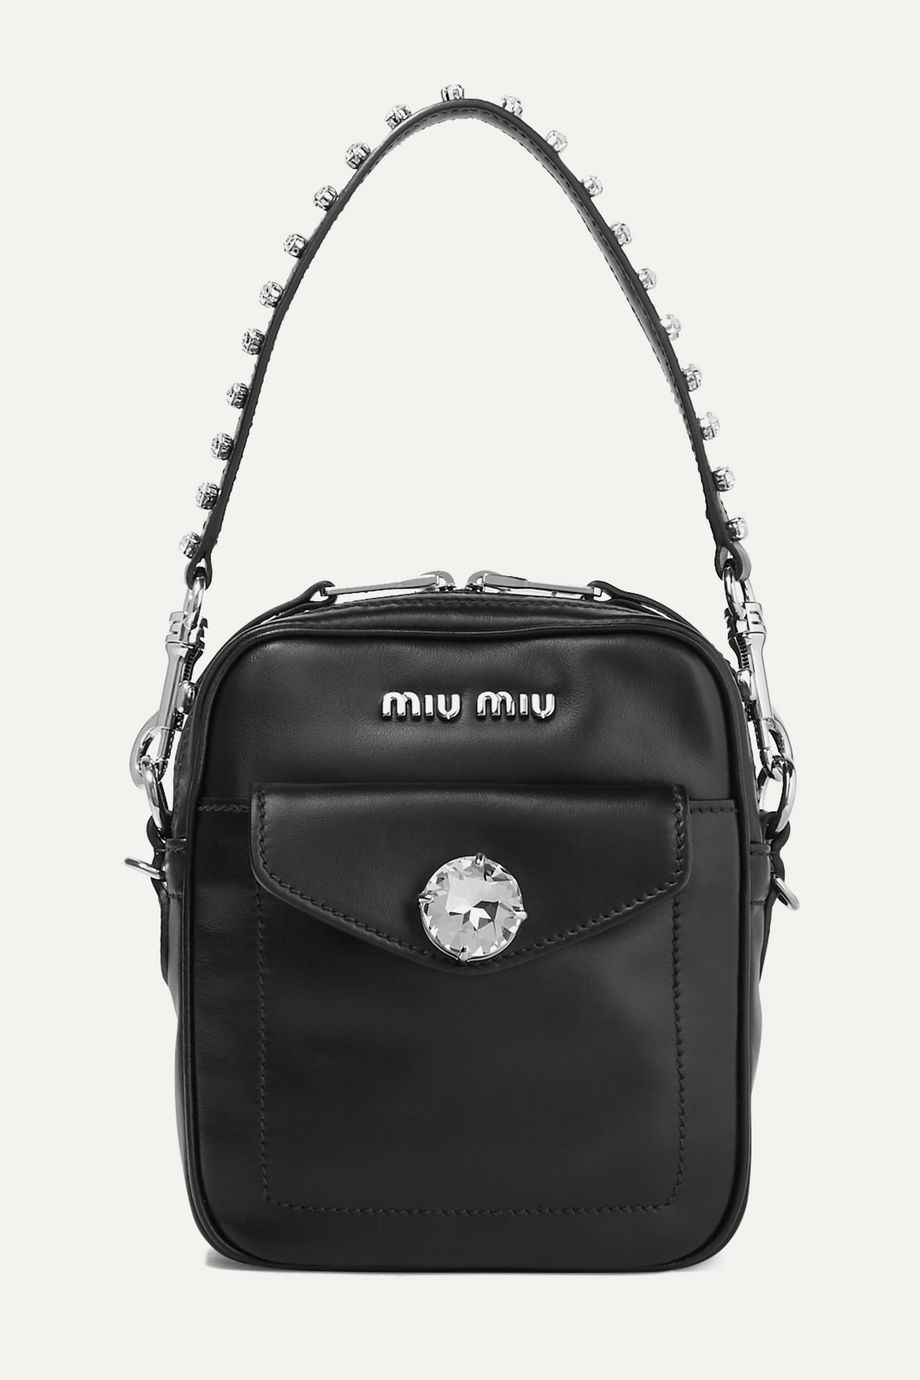 Miu Miu Solitaire crystal-embellished leather camera bag